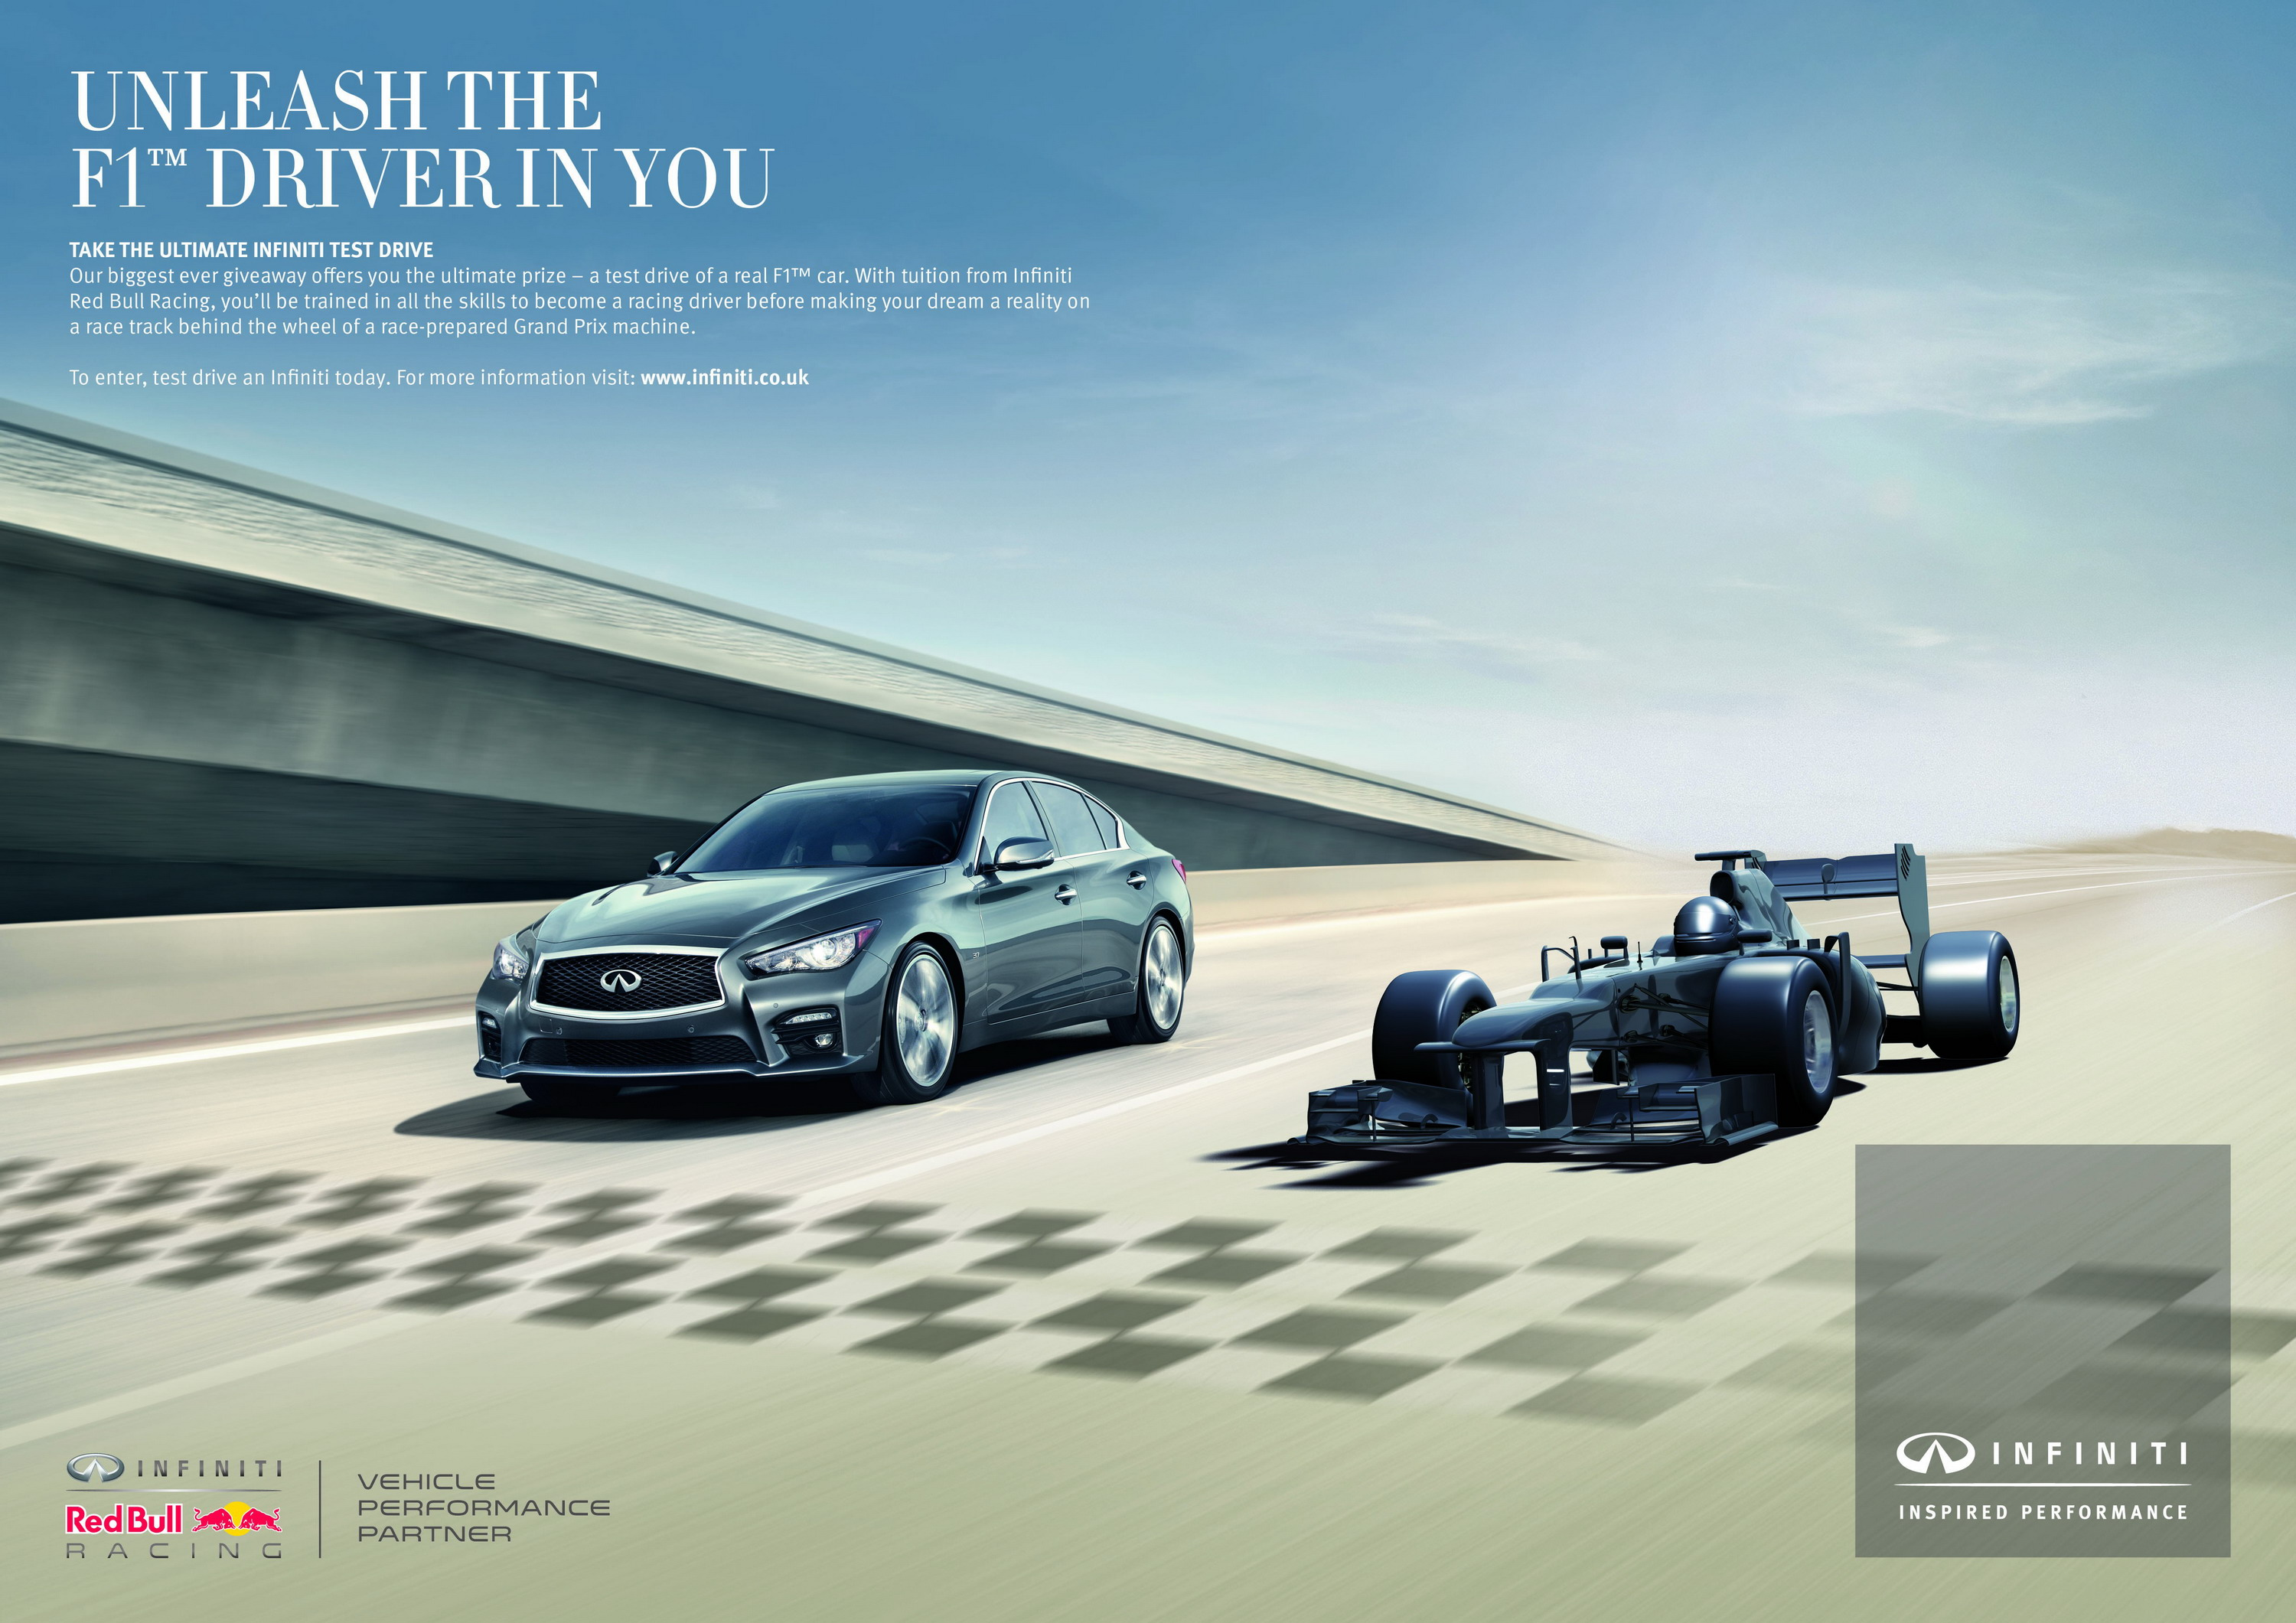 Infiniti S Ultimate Test Drive Campaign Is Offering The Chance To